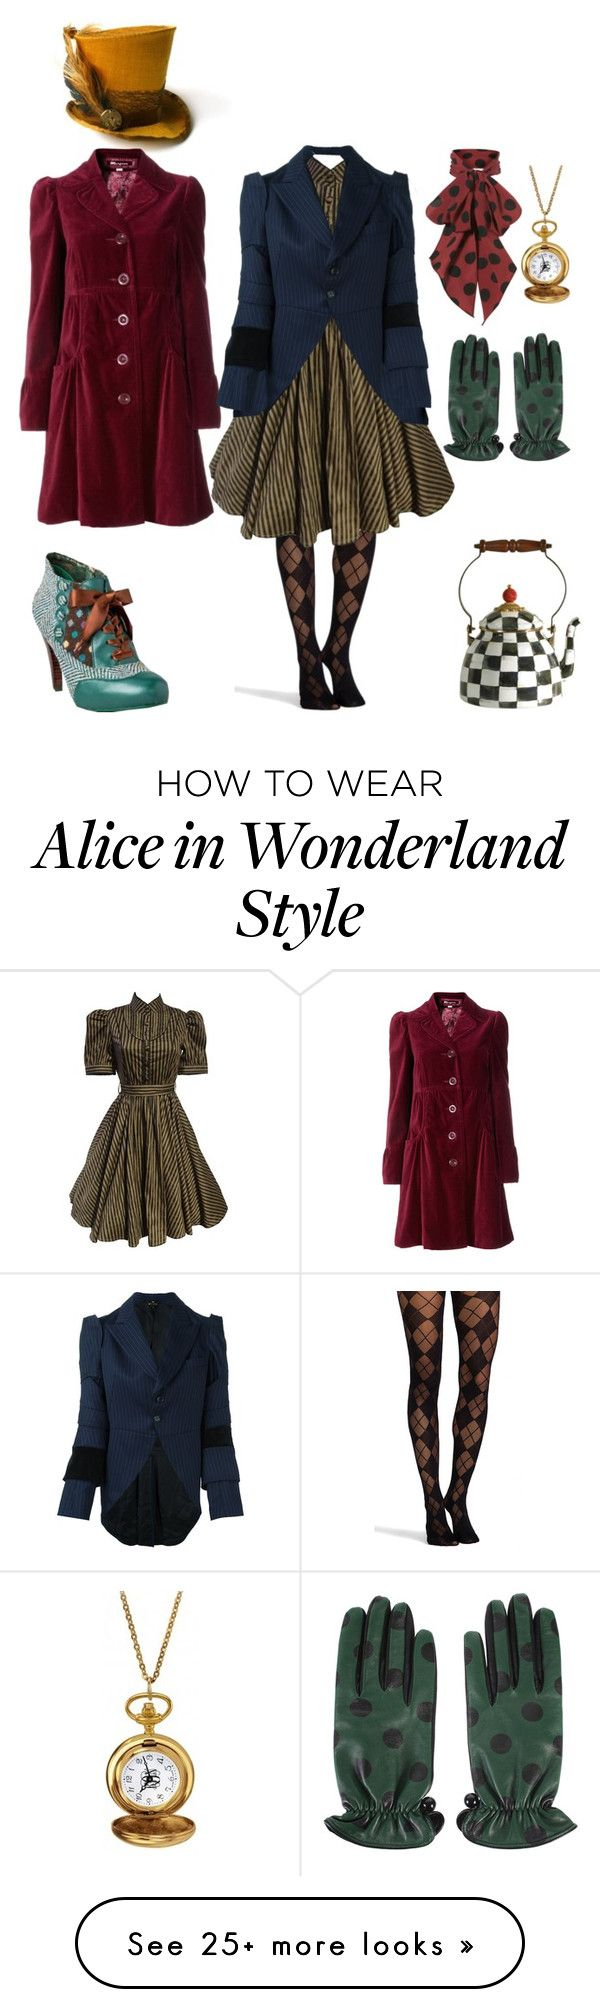 """Steampunk Mad Hatter"" by summersurf2014 on Polyvore featuring Monsoon, Marc Jacobs, Pretty Polly, Comme des Garçons, MacKenzie-Childs and Alison & Ivy"